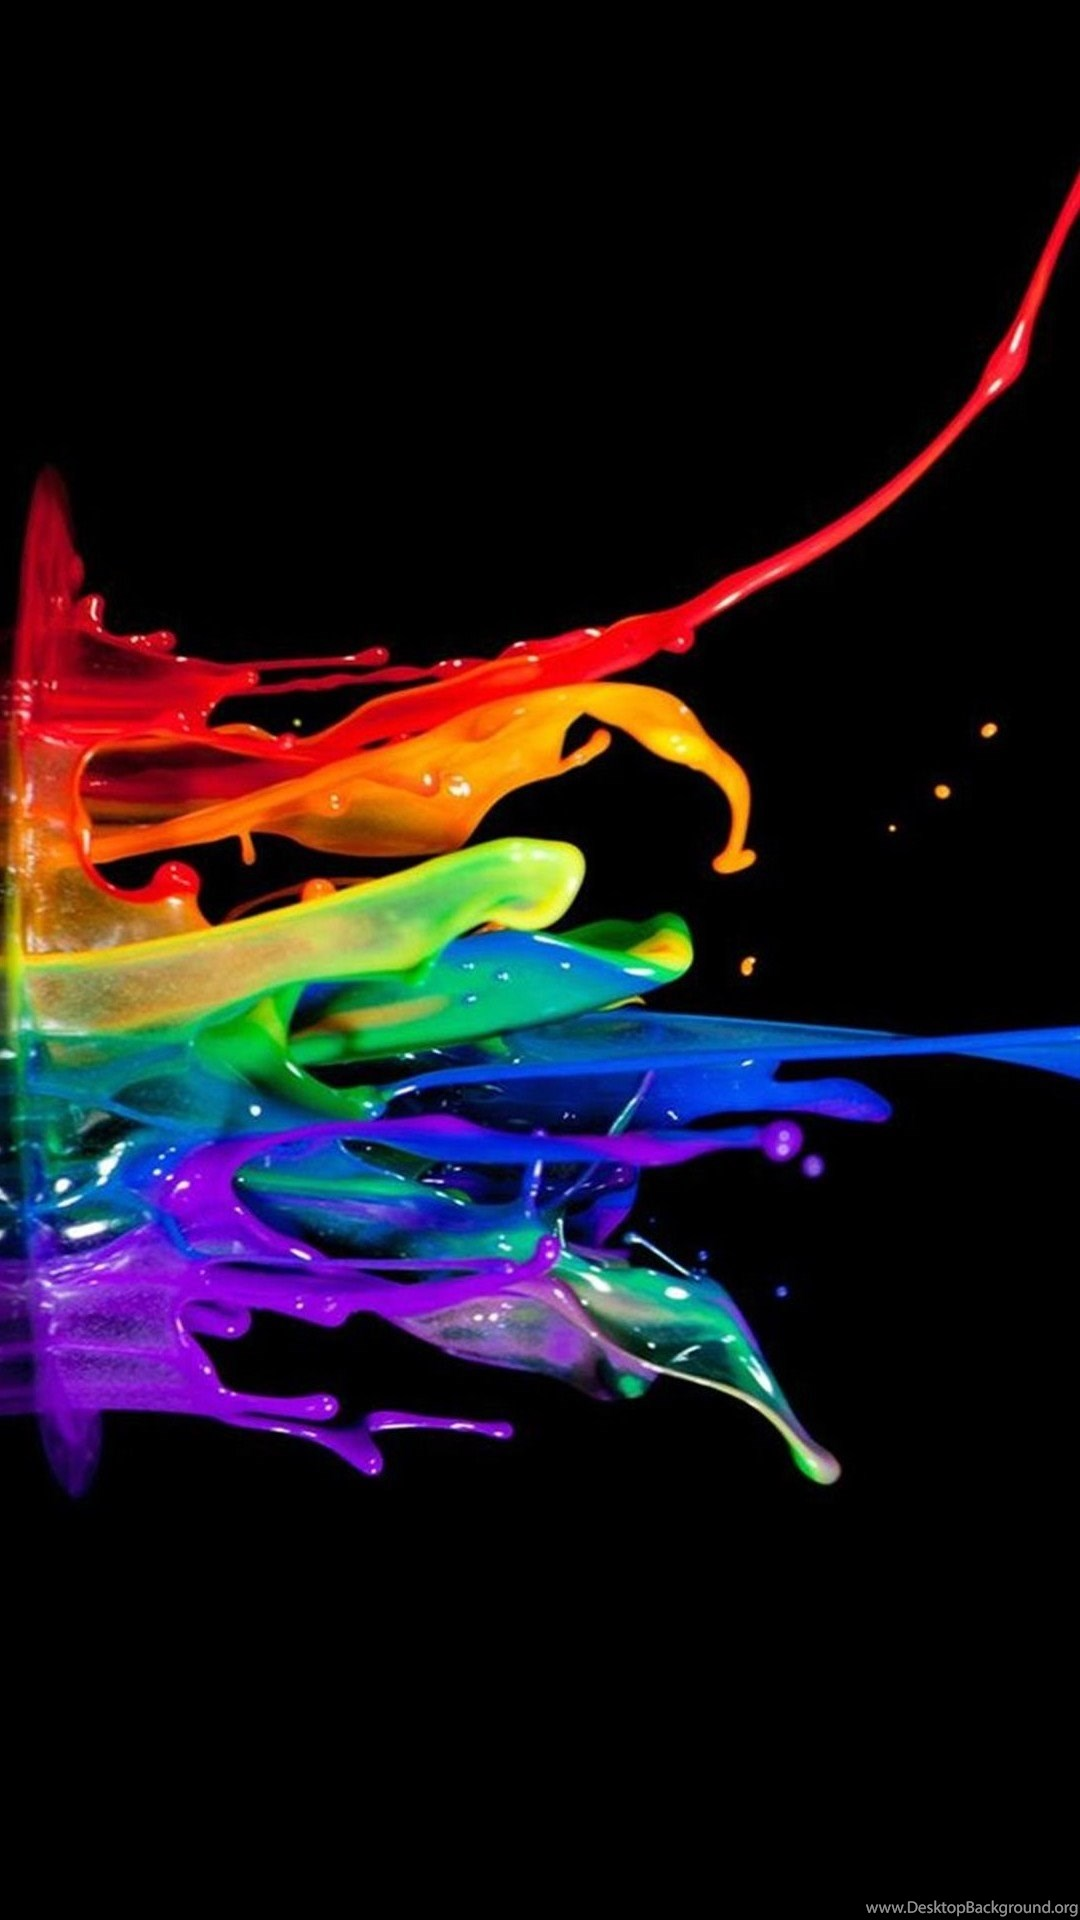 Download Abstract Samsung Galaxy Note 3 Wallpapers Part 3 Desktop